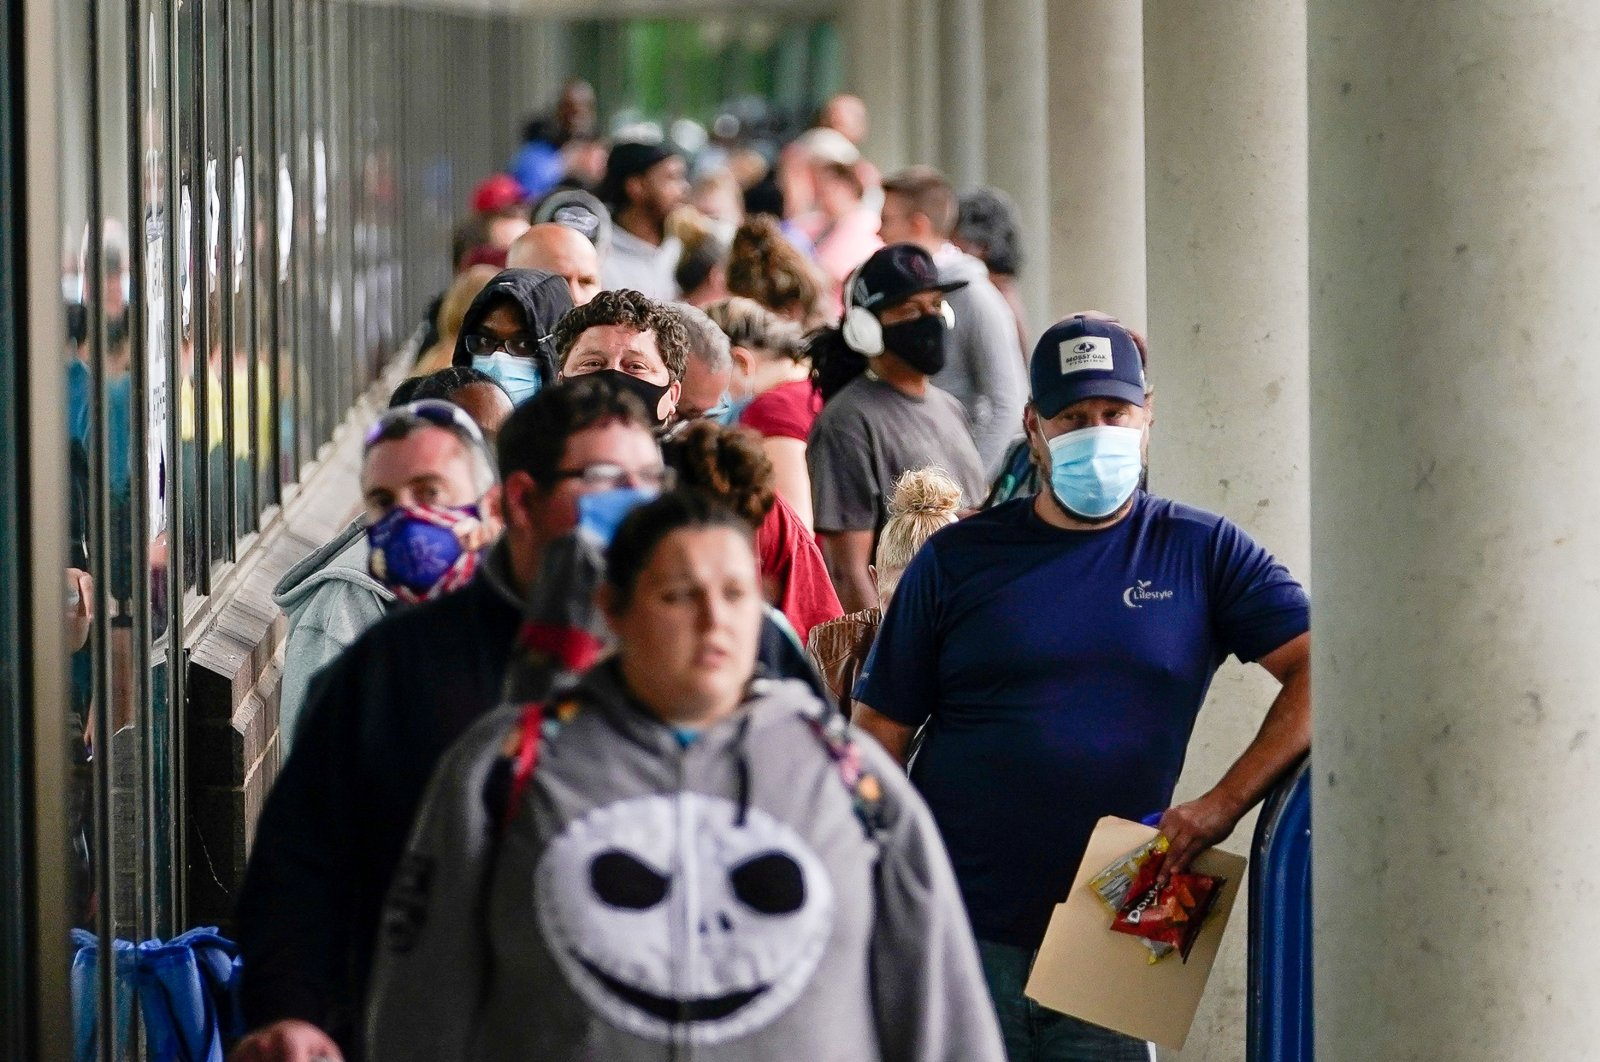 Hundreds of people line up outside a Kentucky Career Center hoping to find assistance with their unemployment claim in Frankfort, Kentucky, U.S., June 18, 2020. (Reuters Photo)